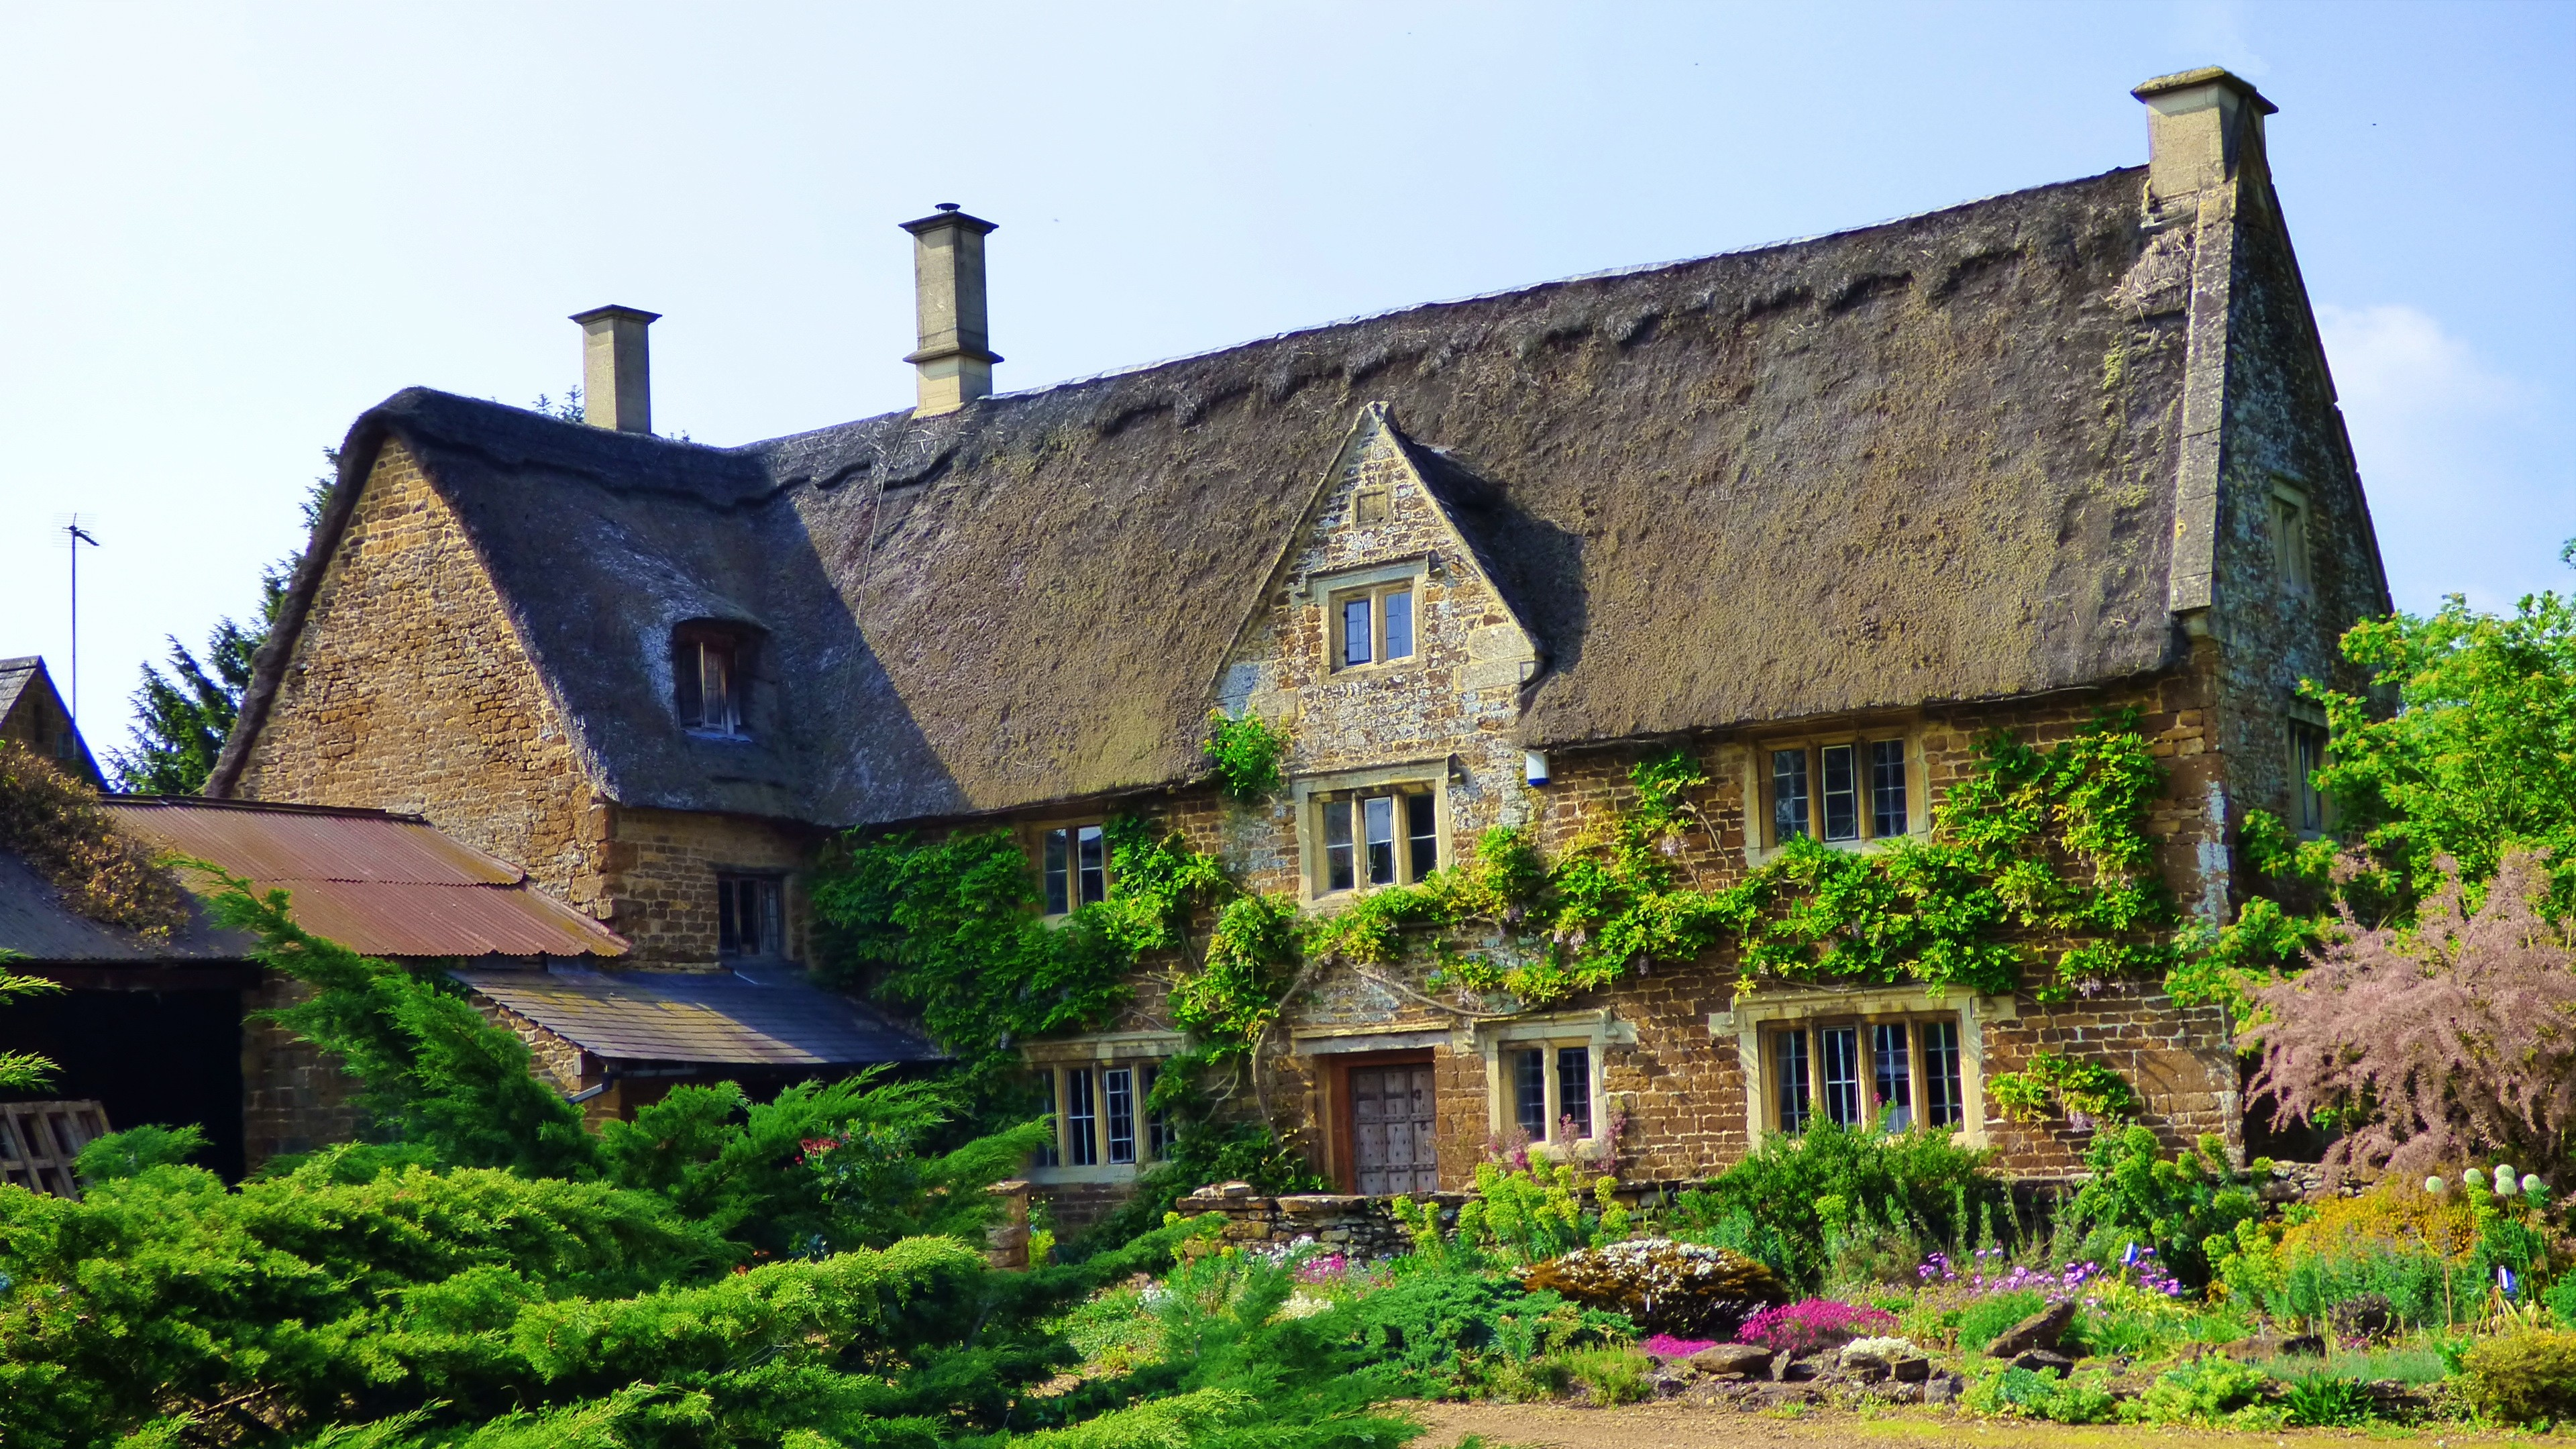 Wallpaper thatched house green roof 4k architecture 18537 for Wallpaper home green